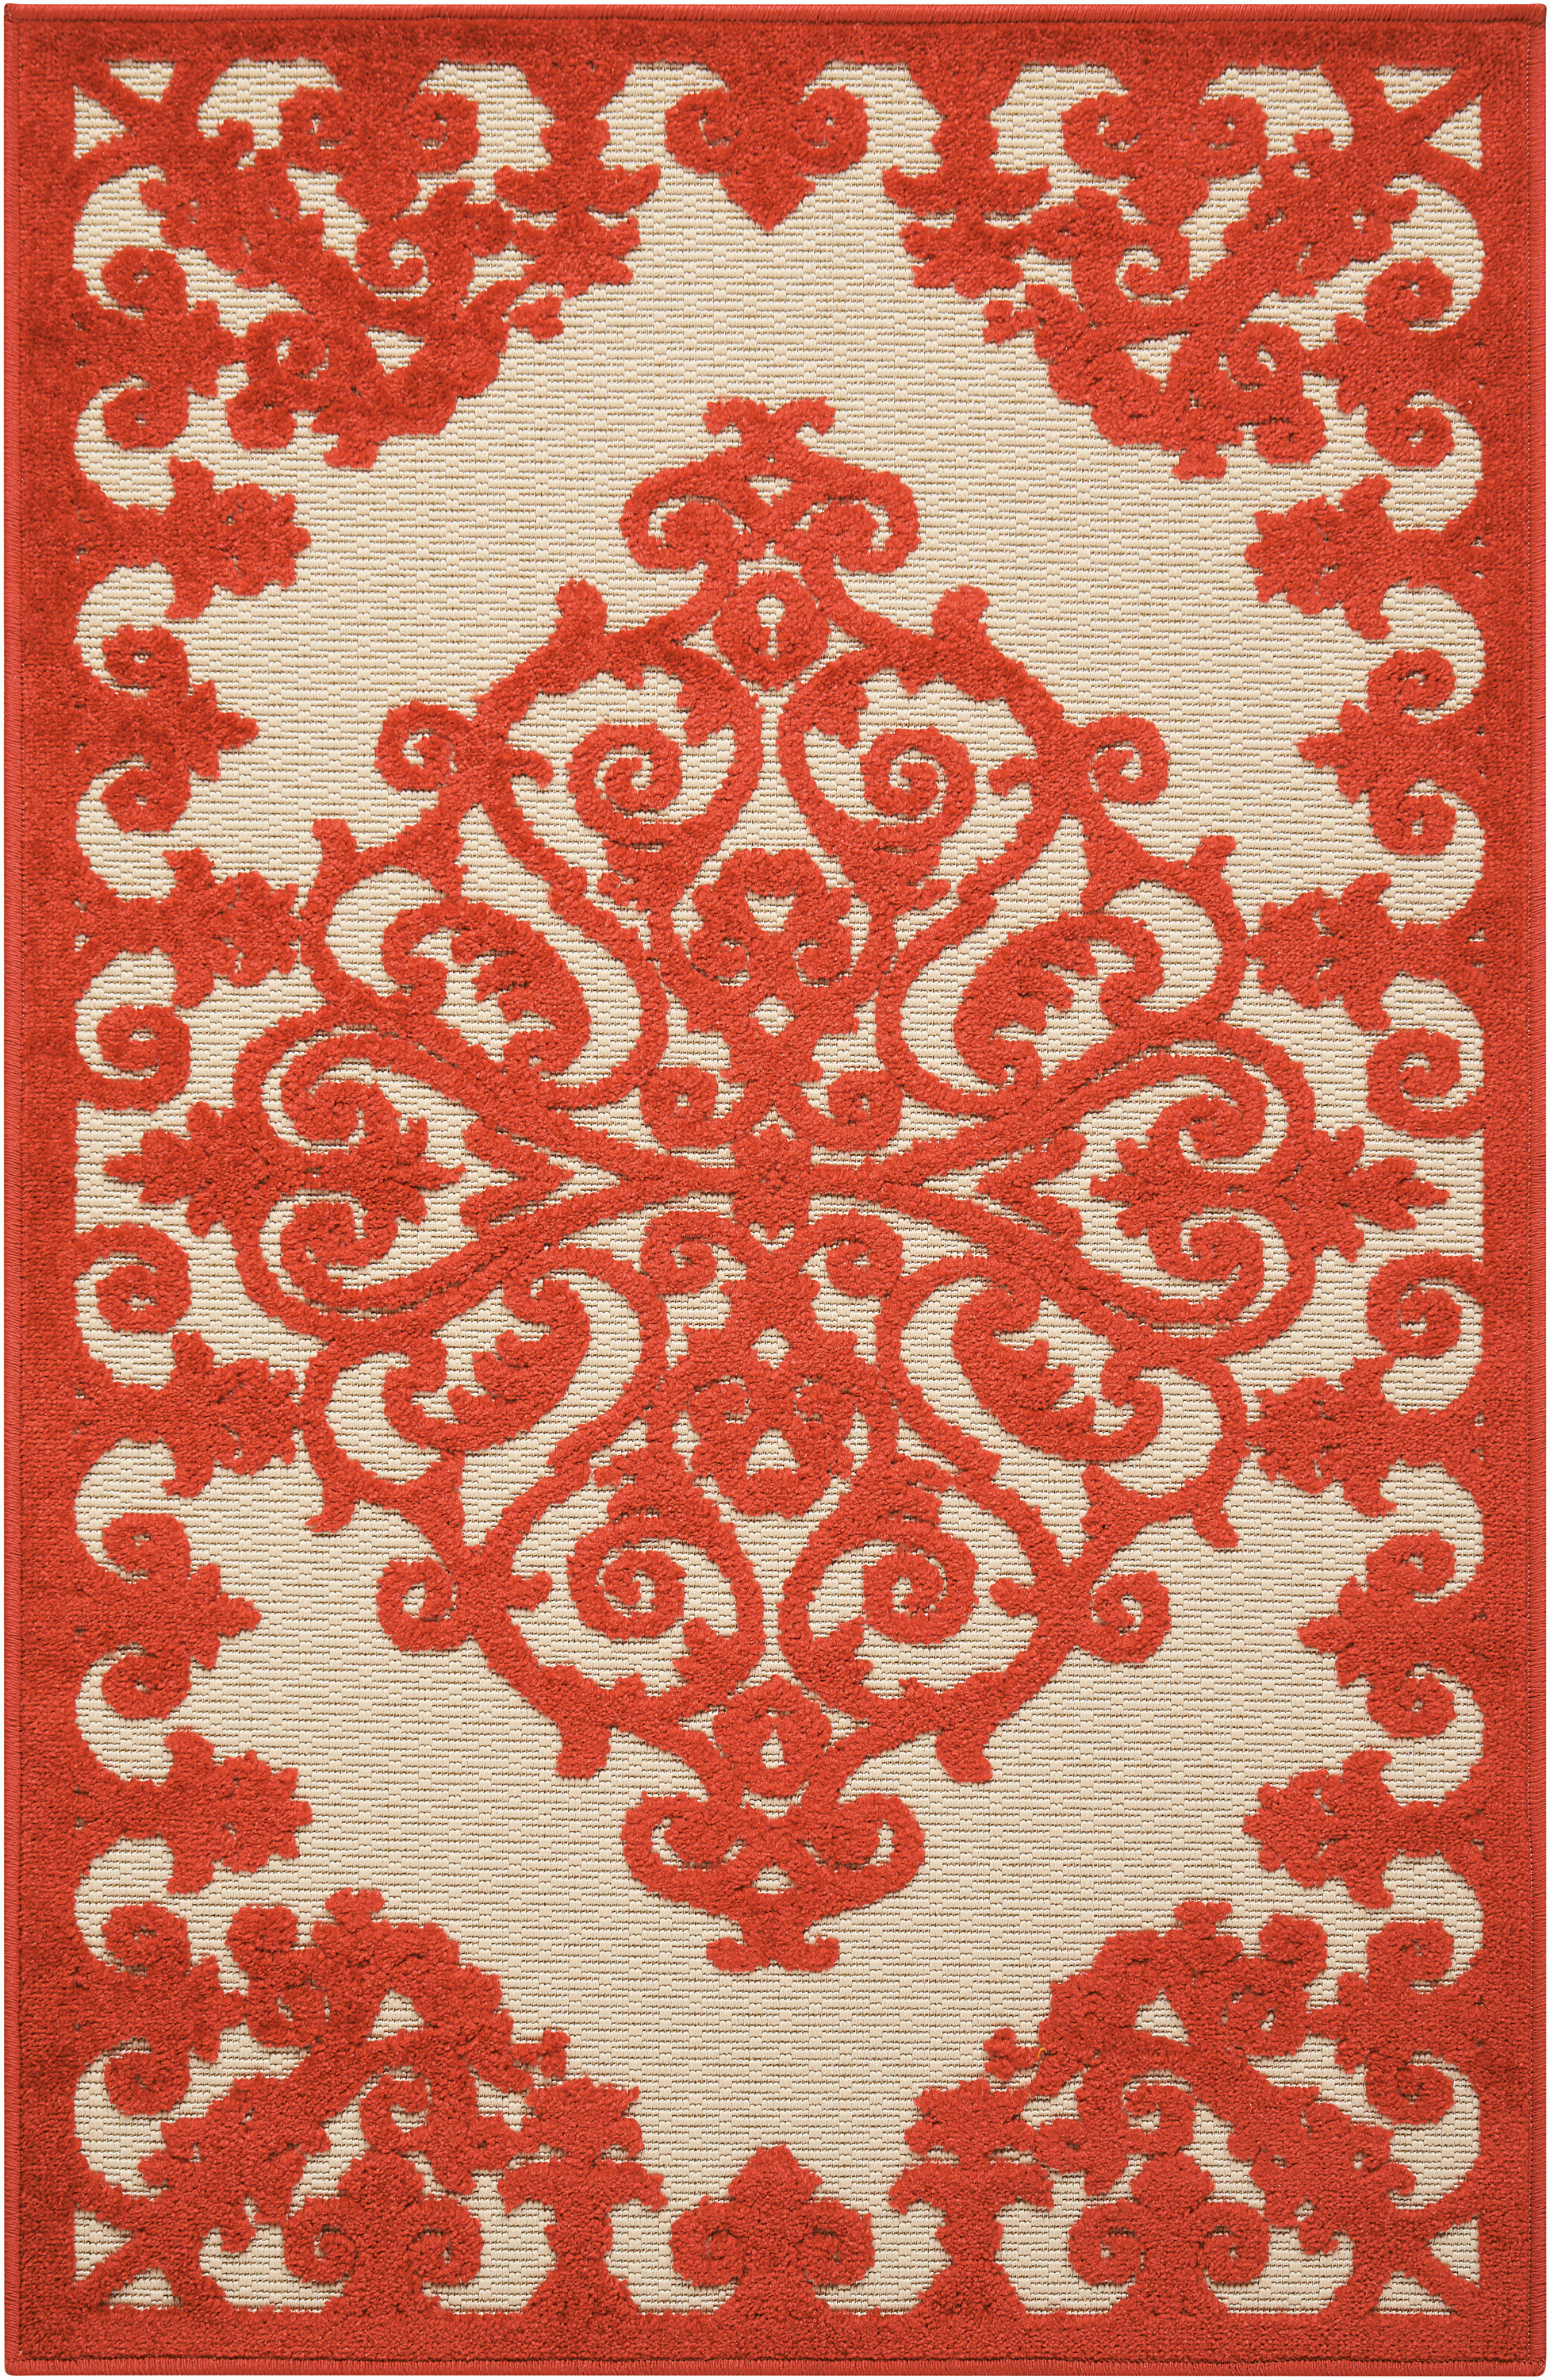 Nourison Aloha Alh12 Red And White 3'X4' Indoor-Outdoor Area Rug